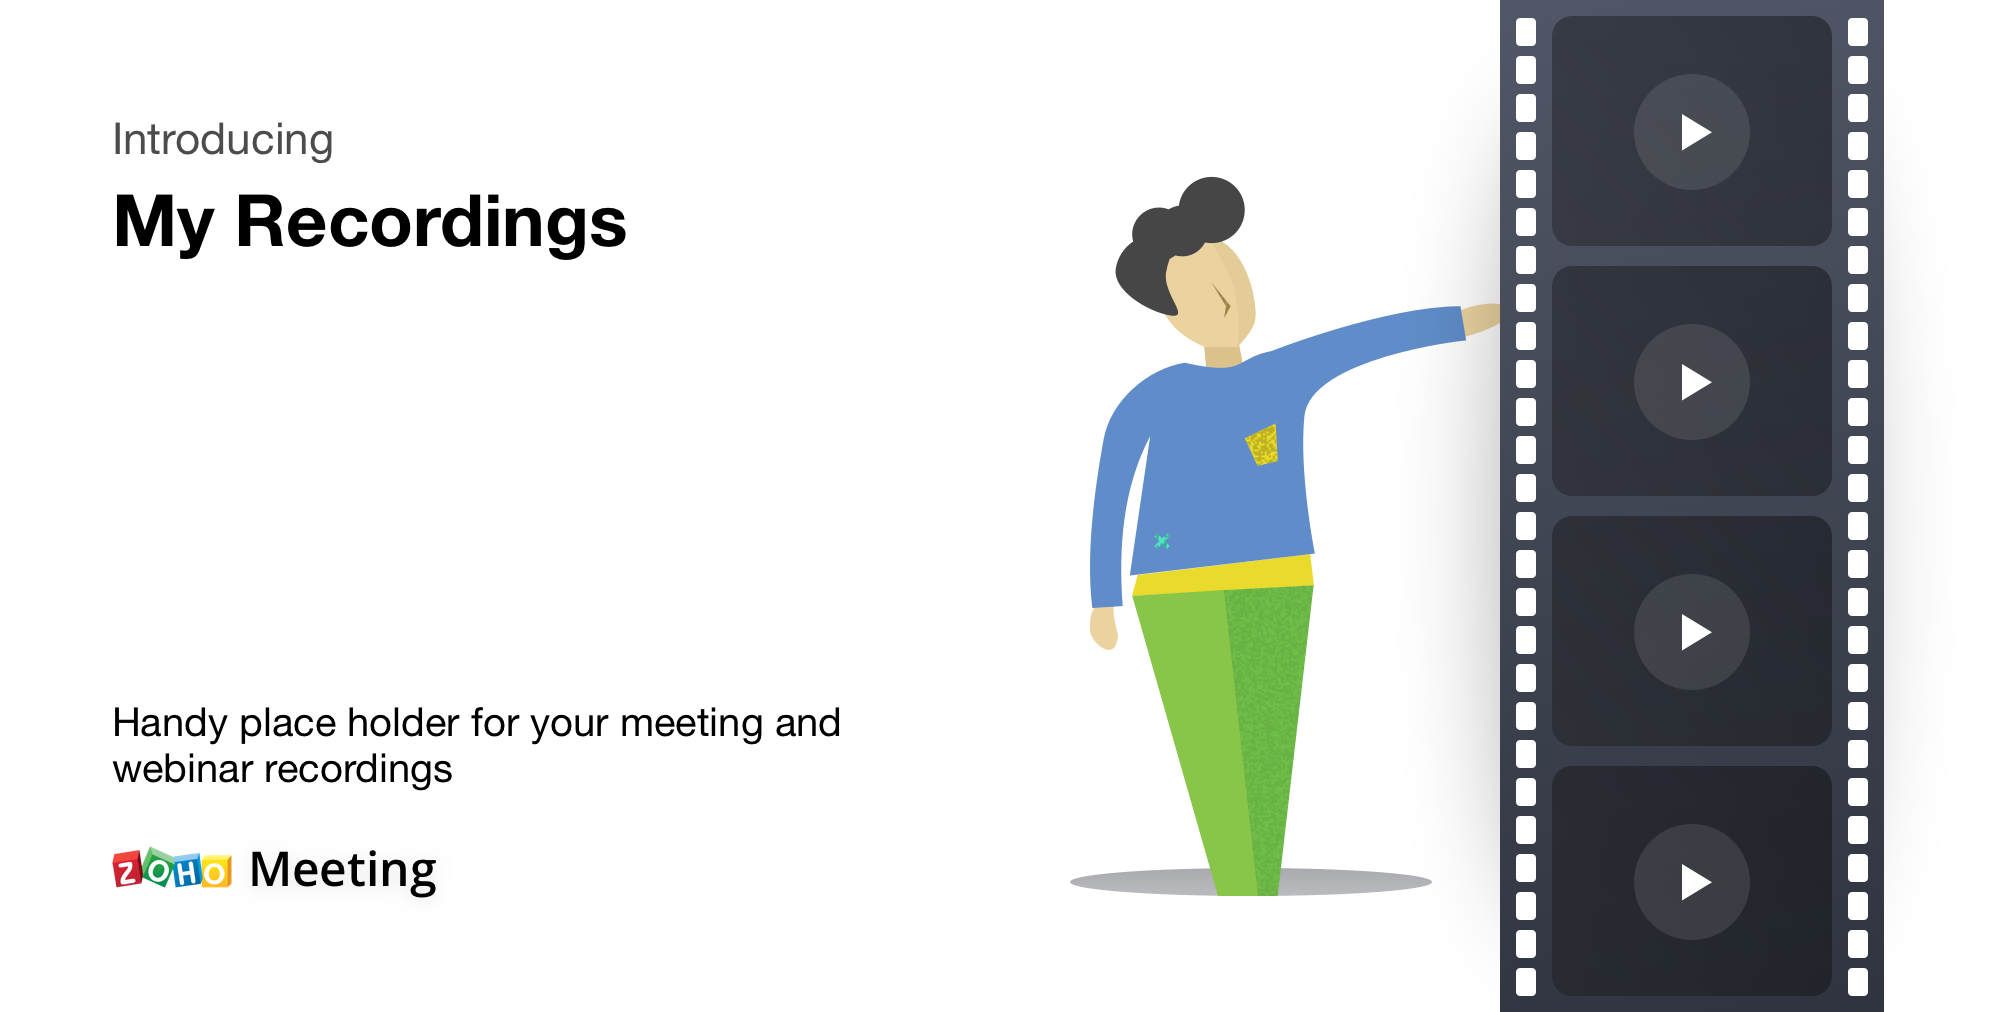 Introducing My Recordings in Zoho Meeting